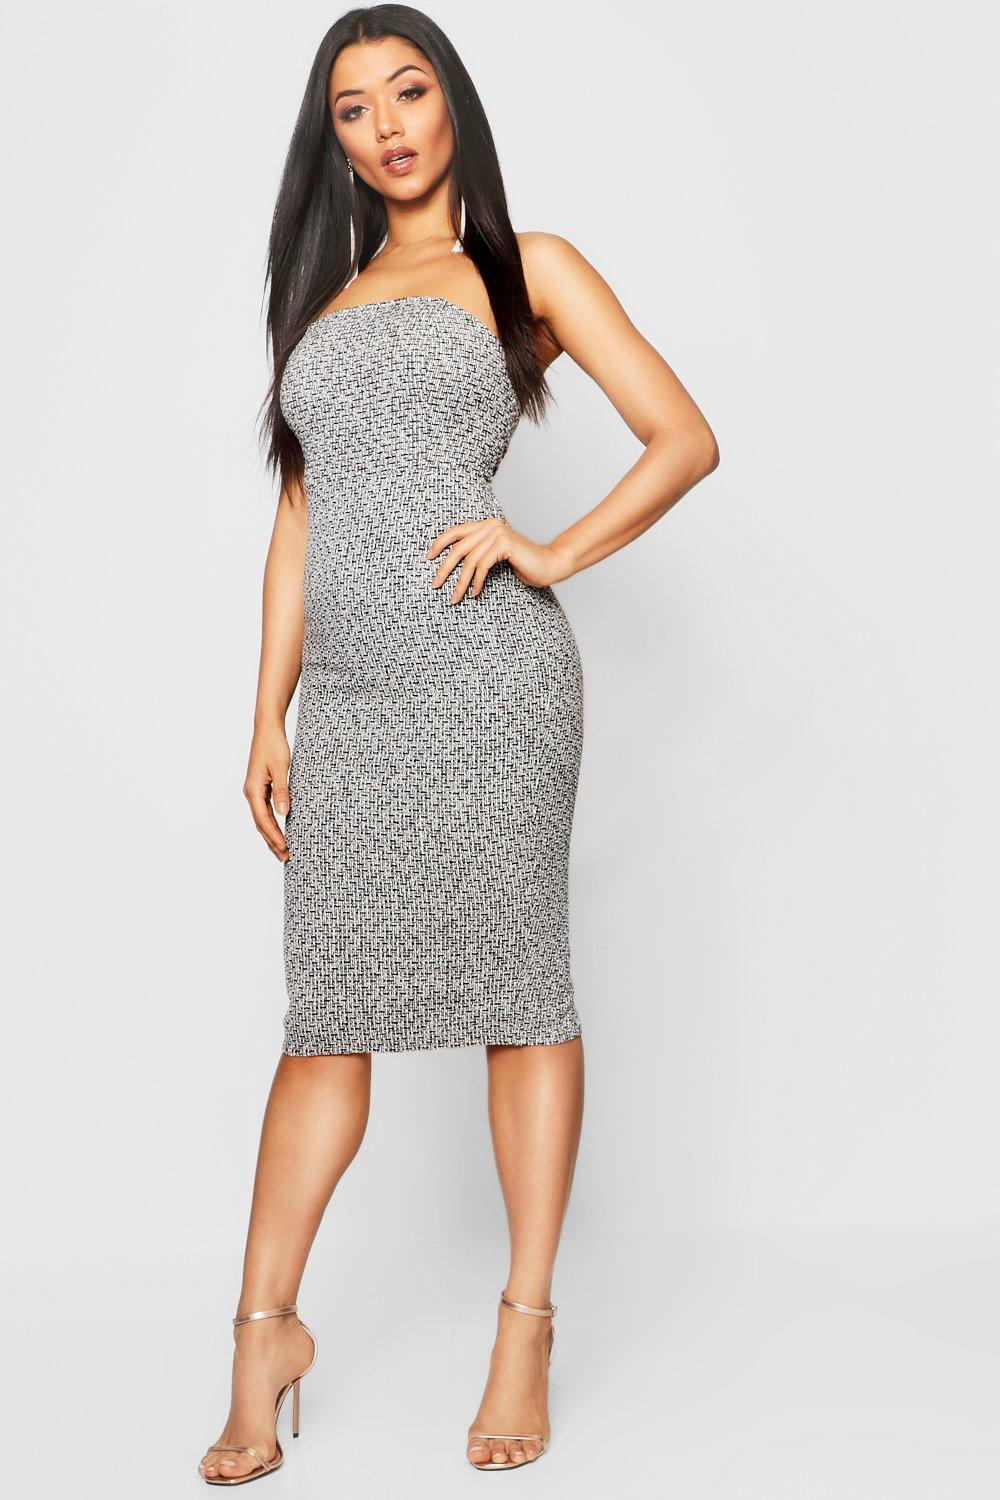 Dress Jacquard Bandeau Midi Dress Bandeau Jacquard Midi 1OxfPq